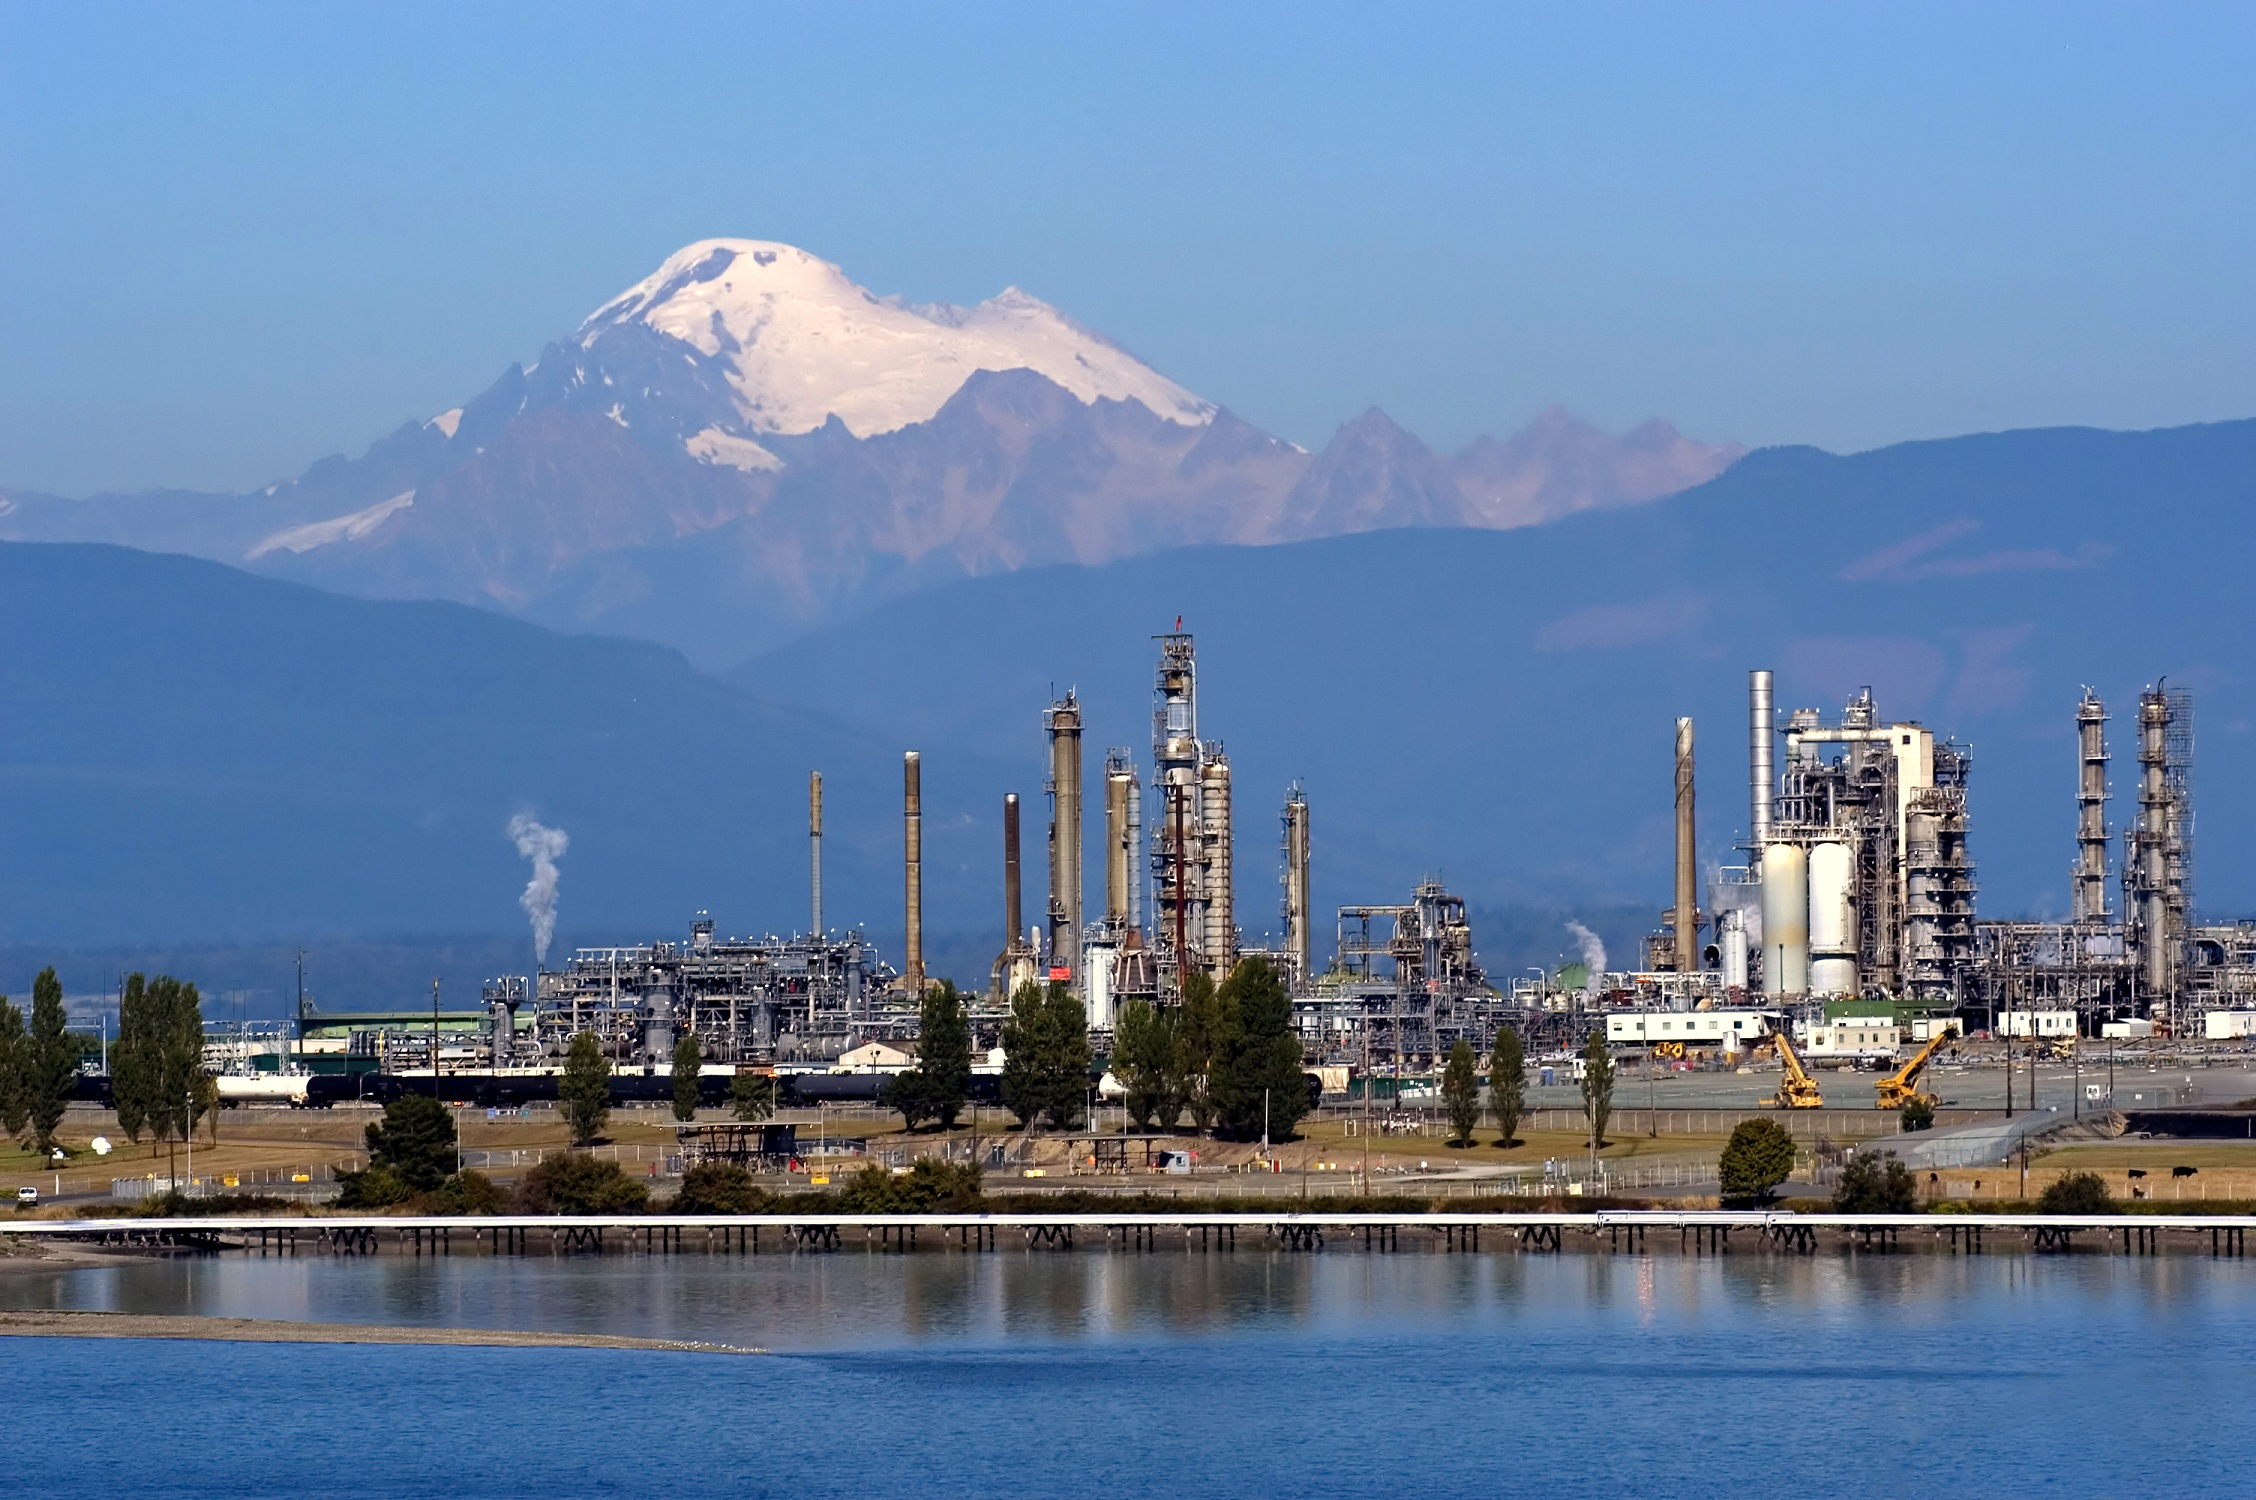 Washington State is the principal refining center for the Pacific Northwest